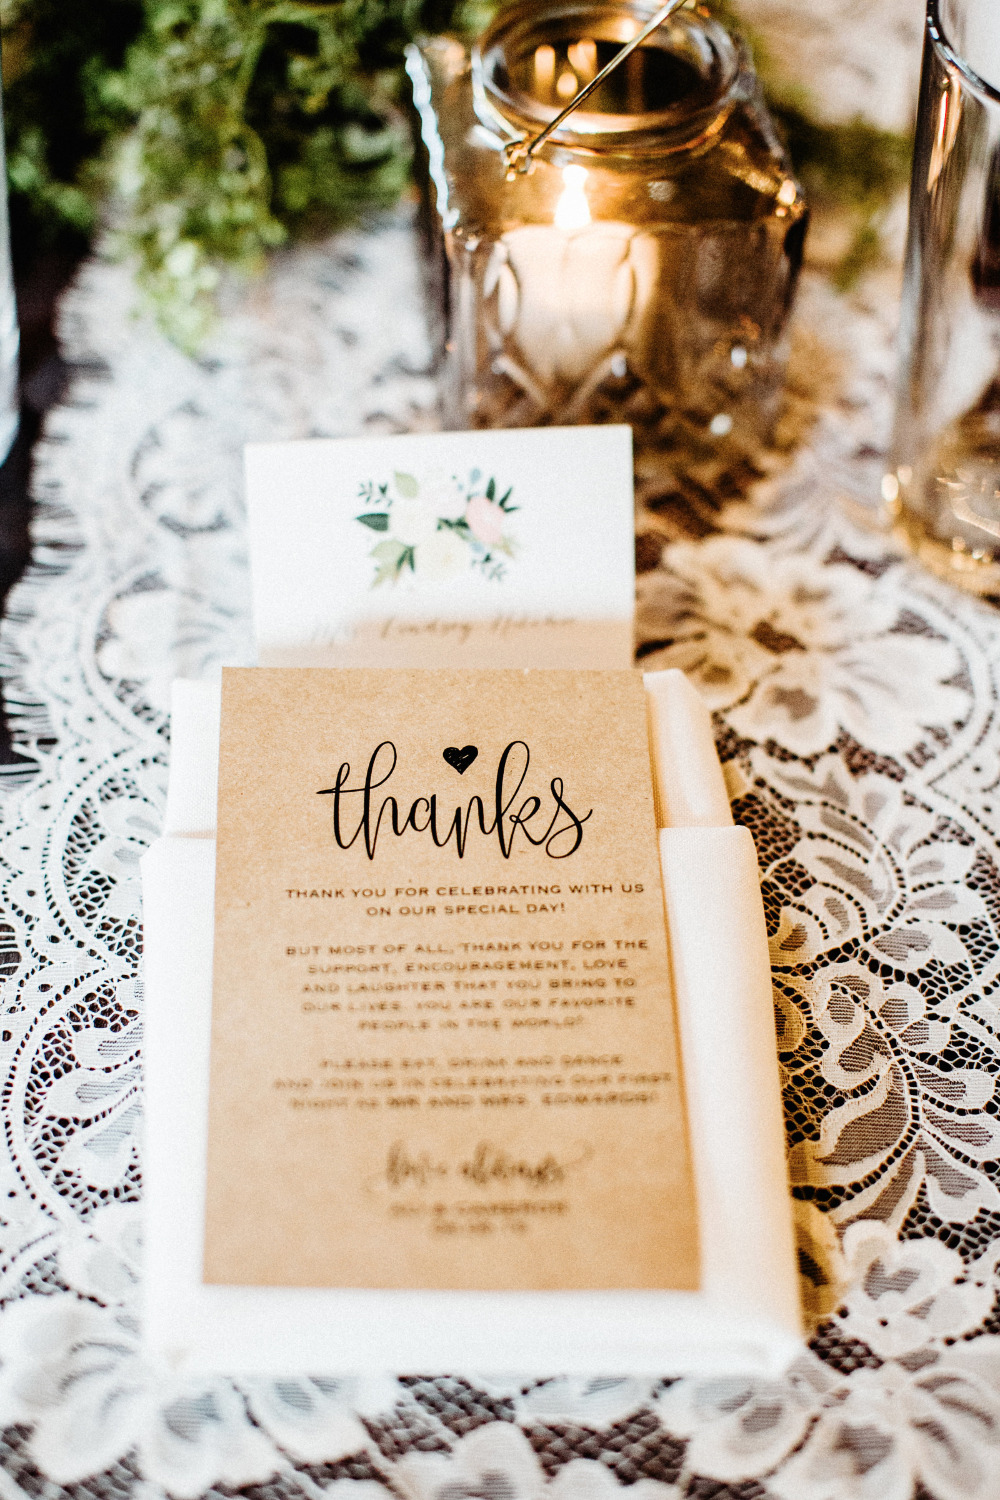 kraft paper thank you note for wedding guests